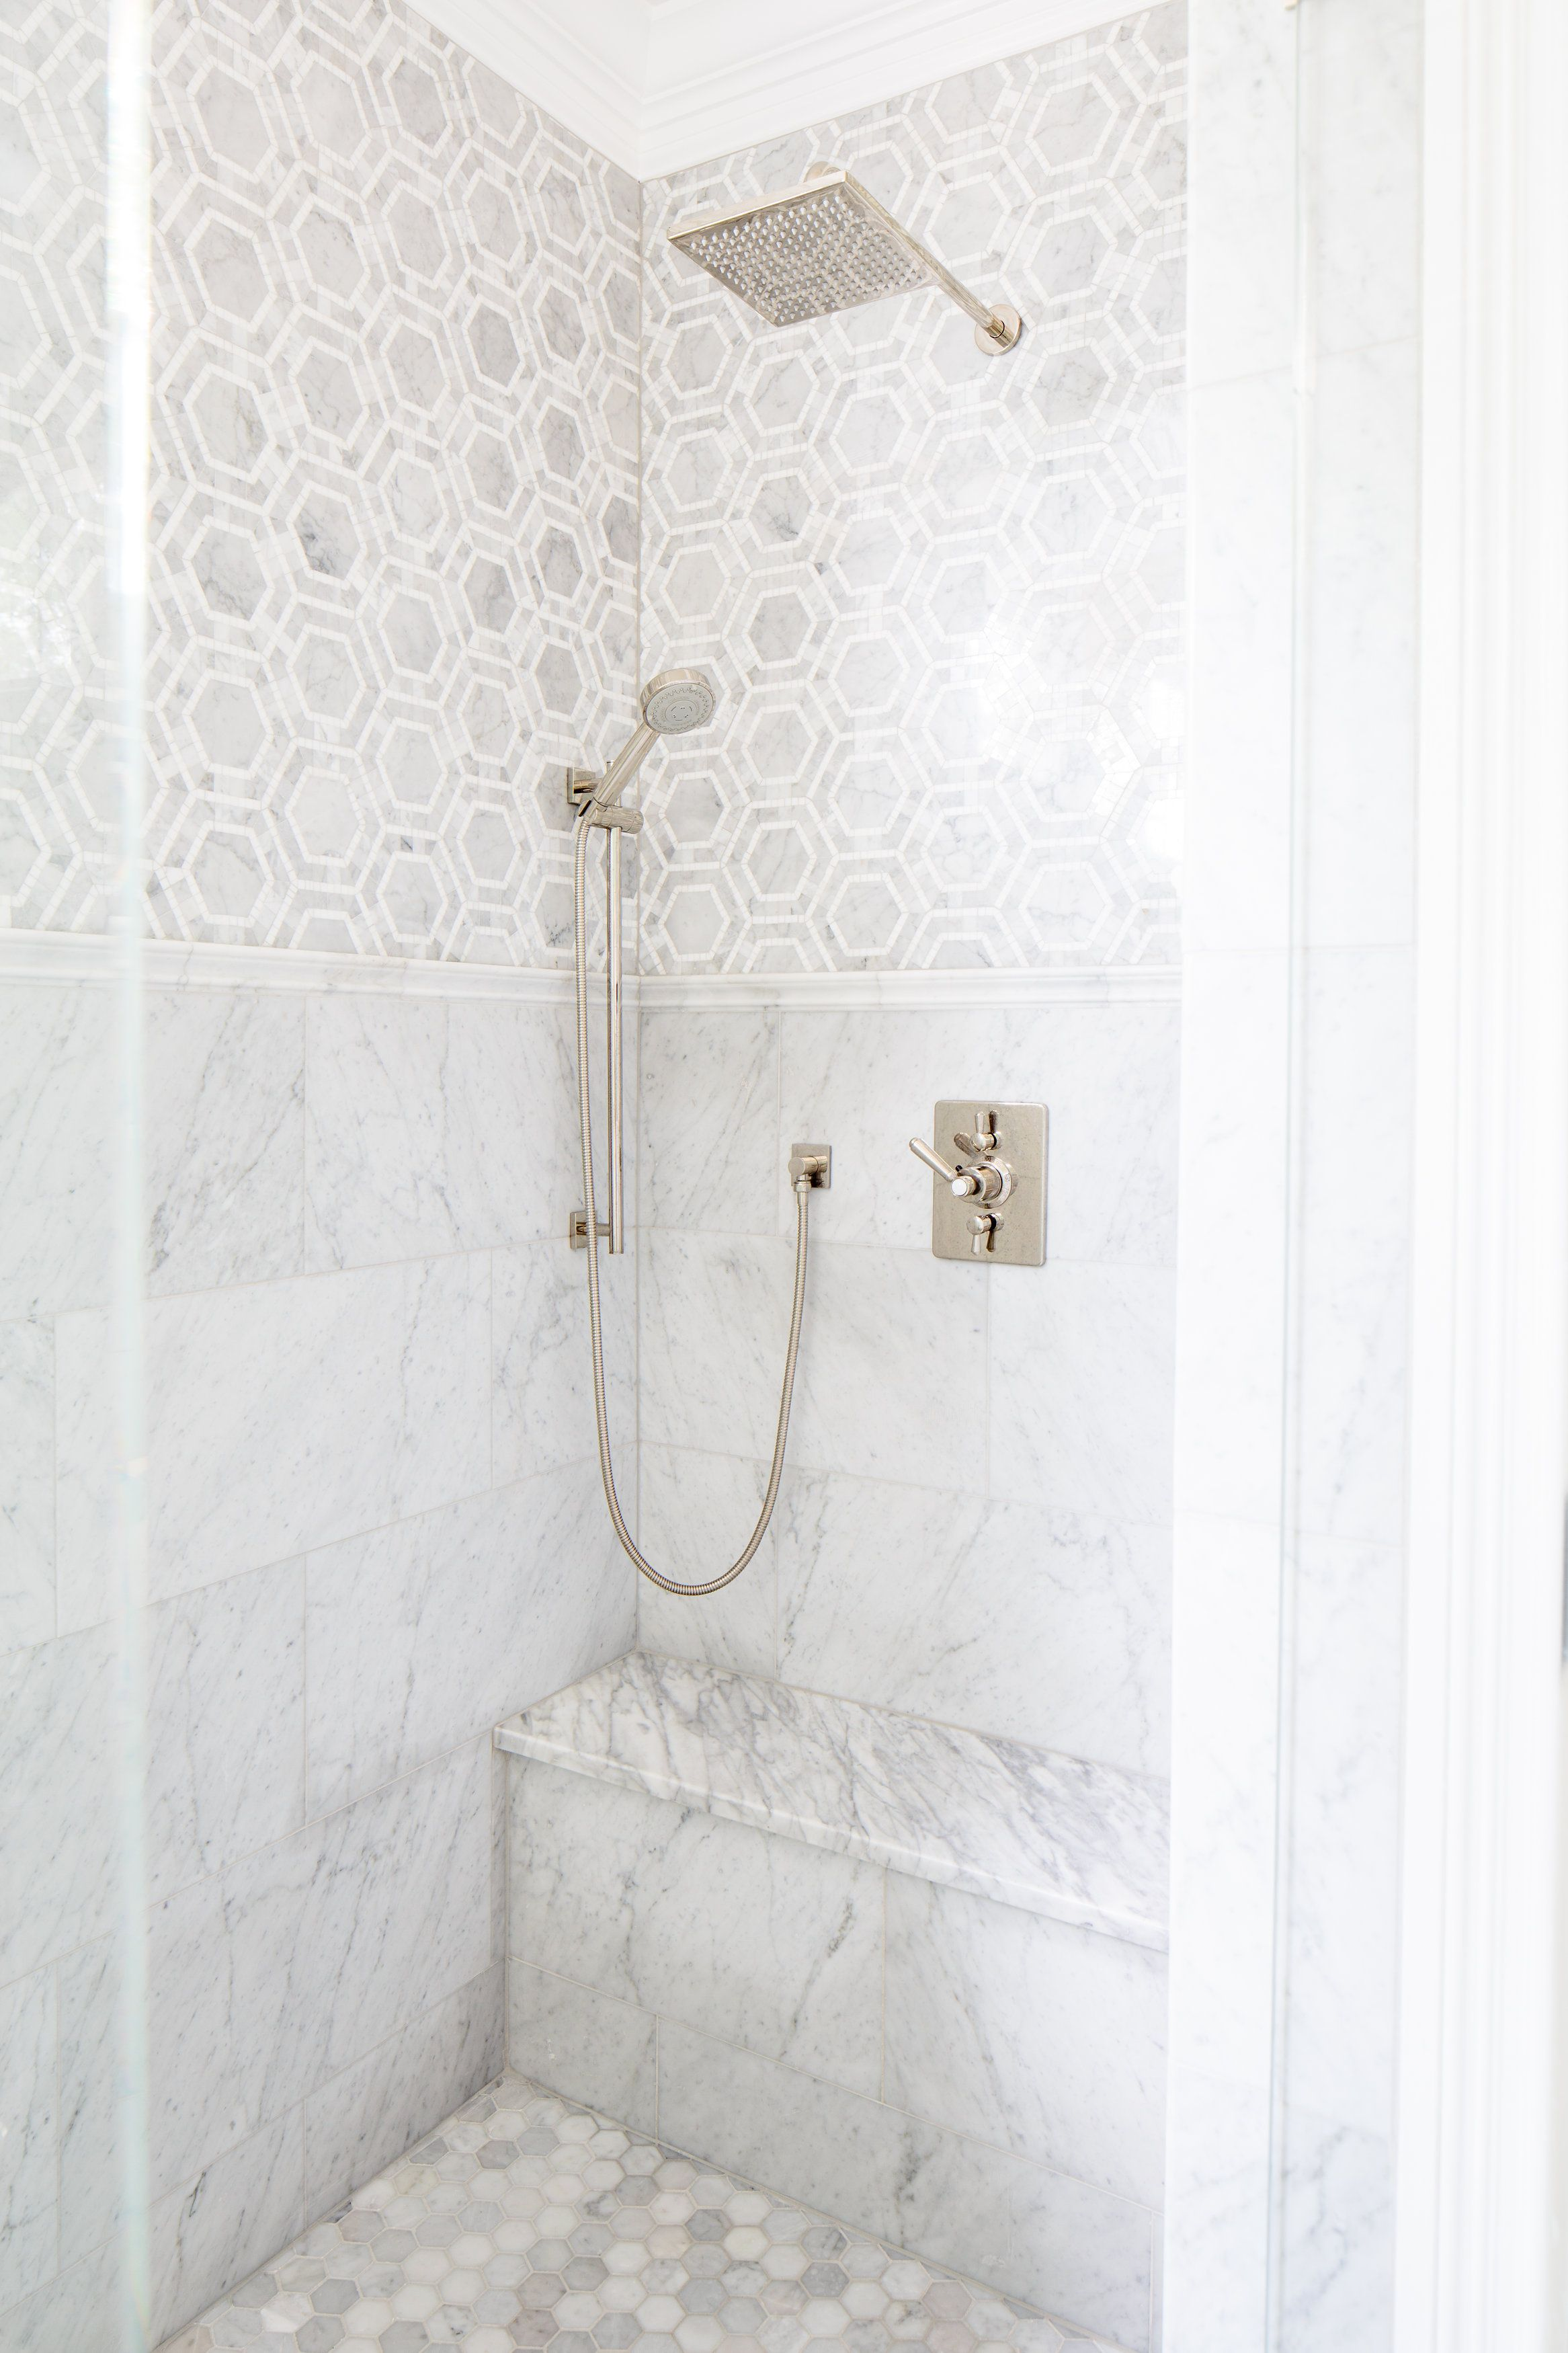 Grey And White Marble And Tile Mix Natalie Clayman Design Marble Tile Bathroom Bathrooms Remodel Bathroom Design